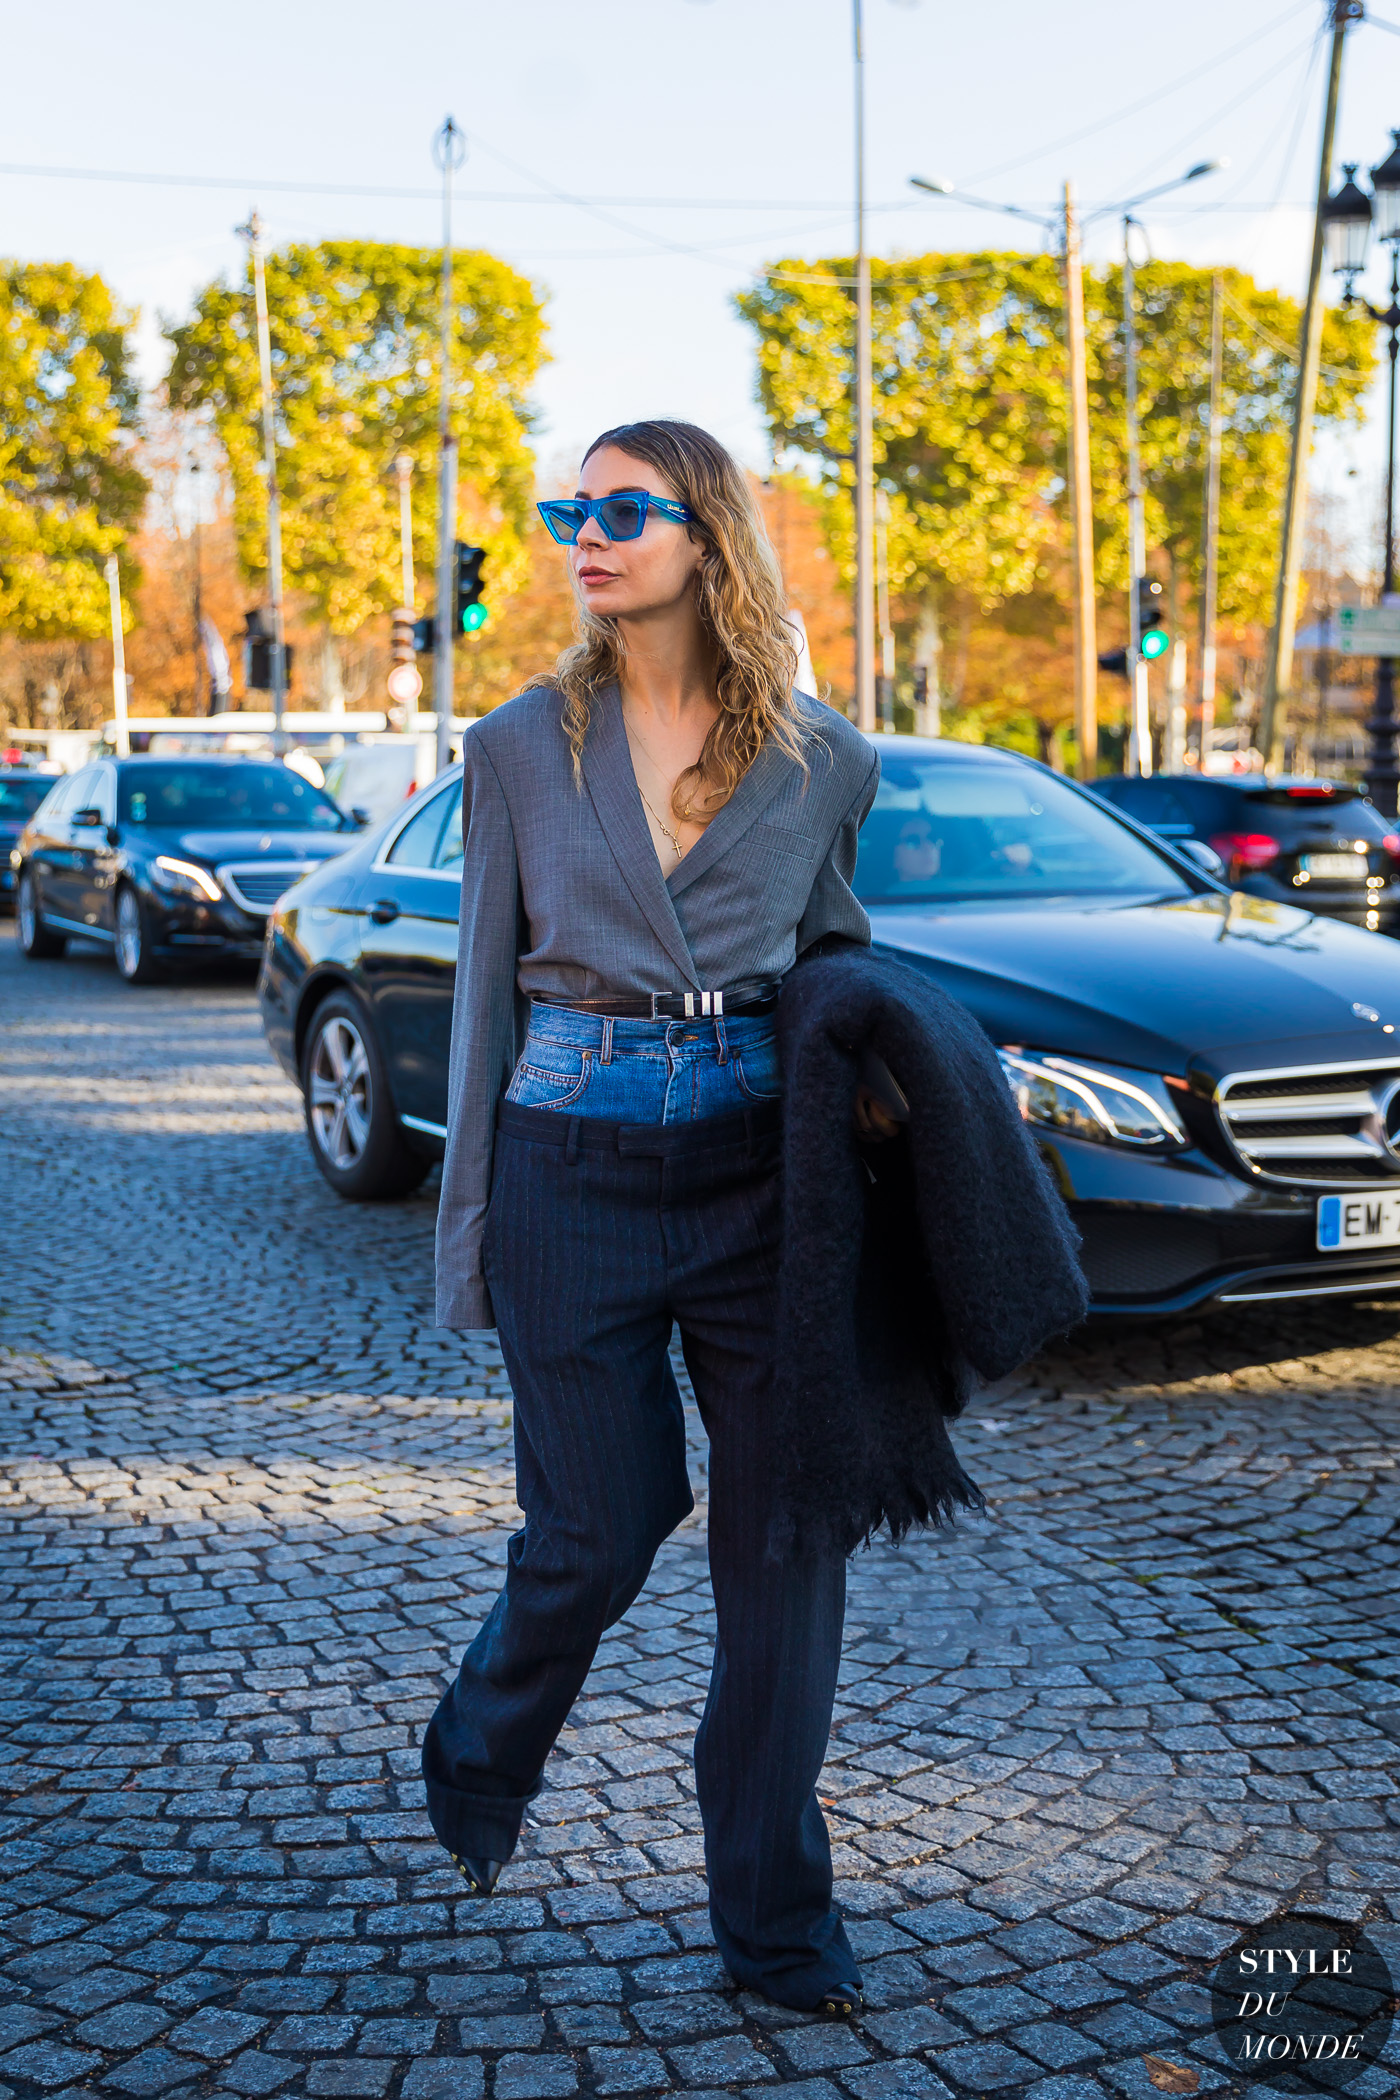 Irina Lakicevic by STYLEDUMONDE Street Style Fashion Photography_48A2572